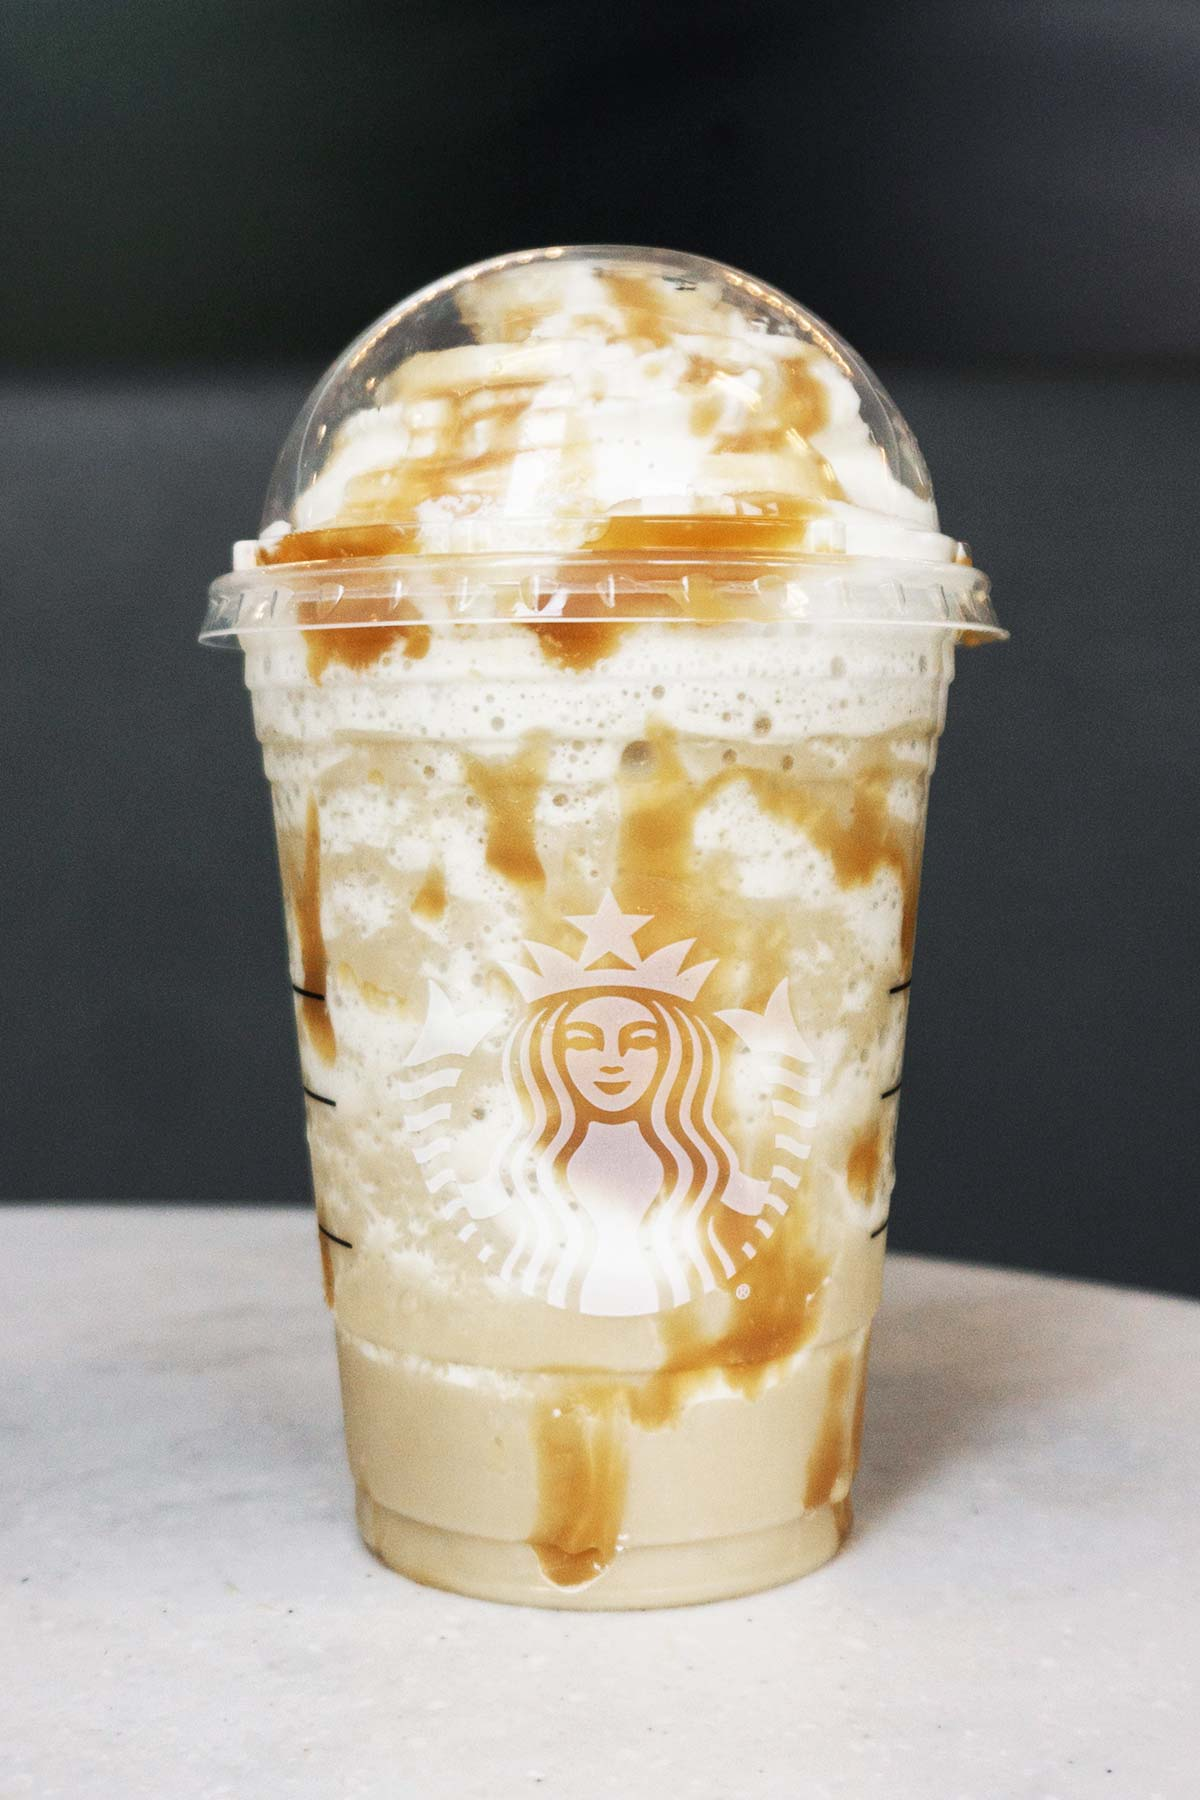 Starbucks Butterbeer Frappuccino in a plastic cup.